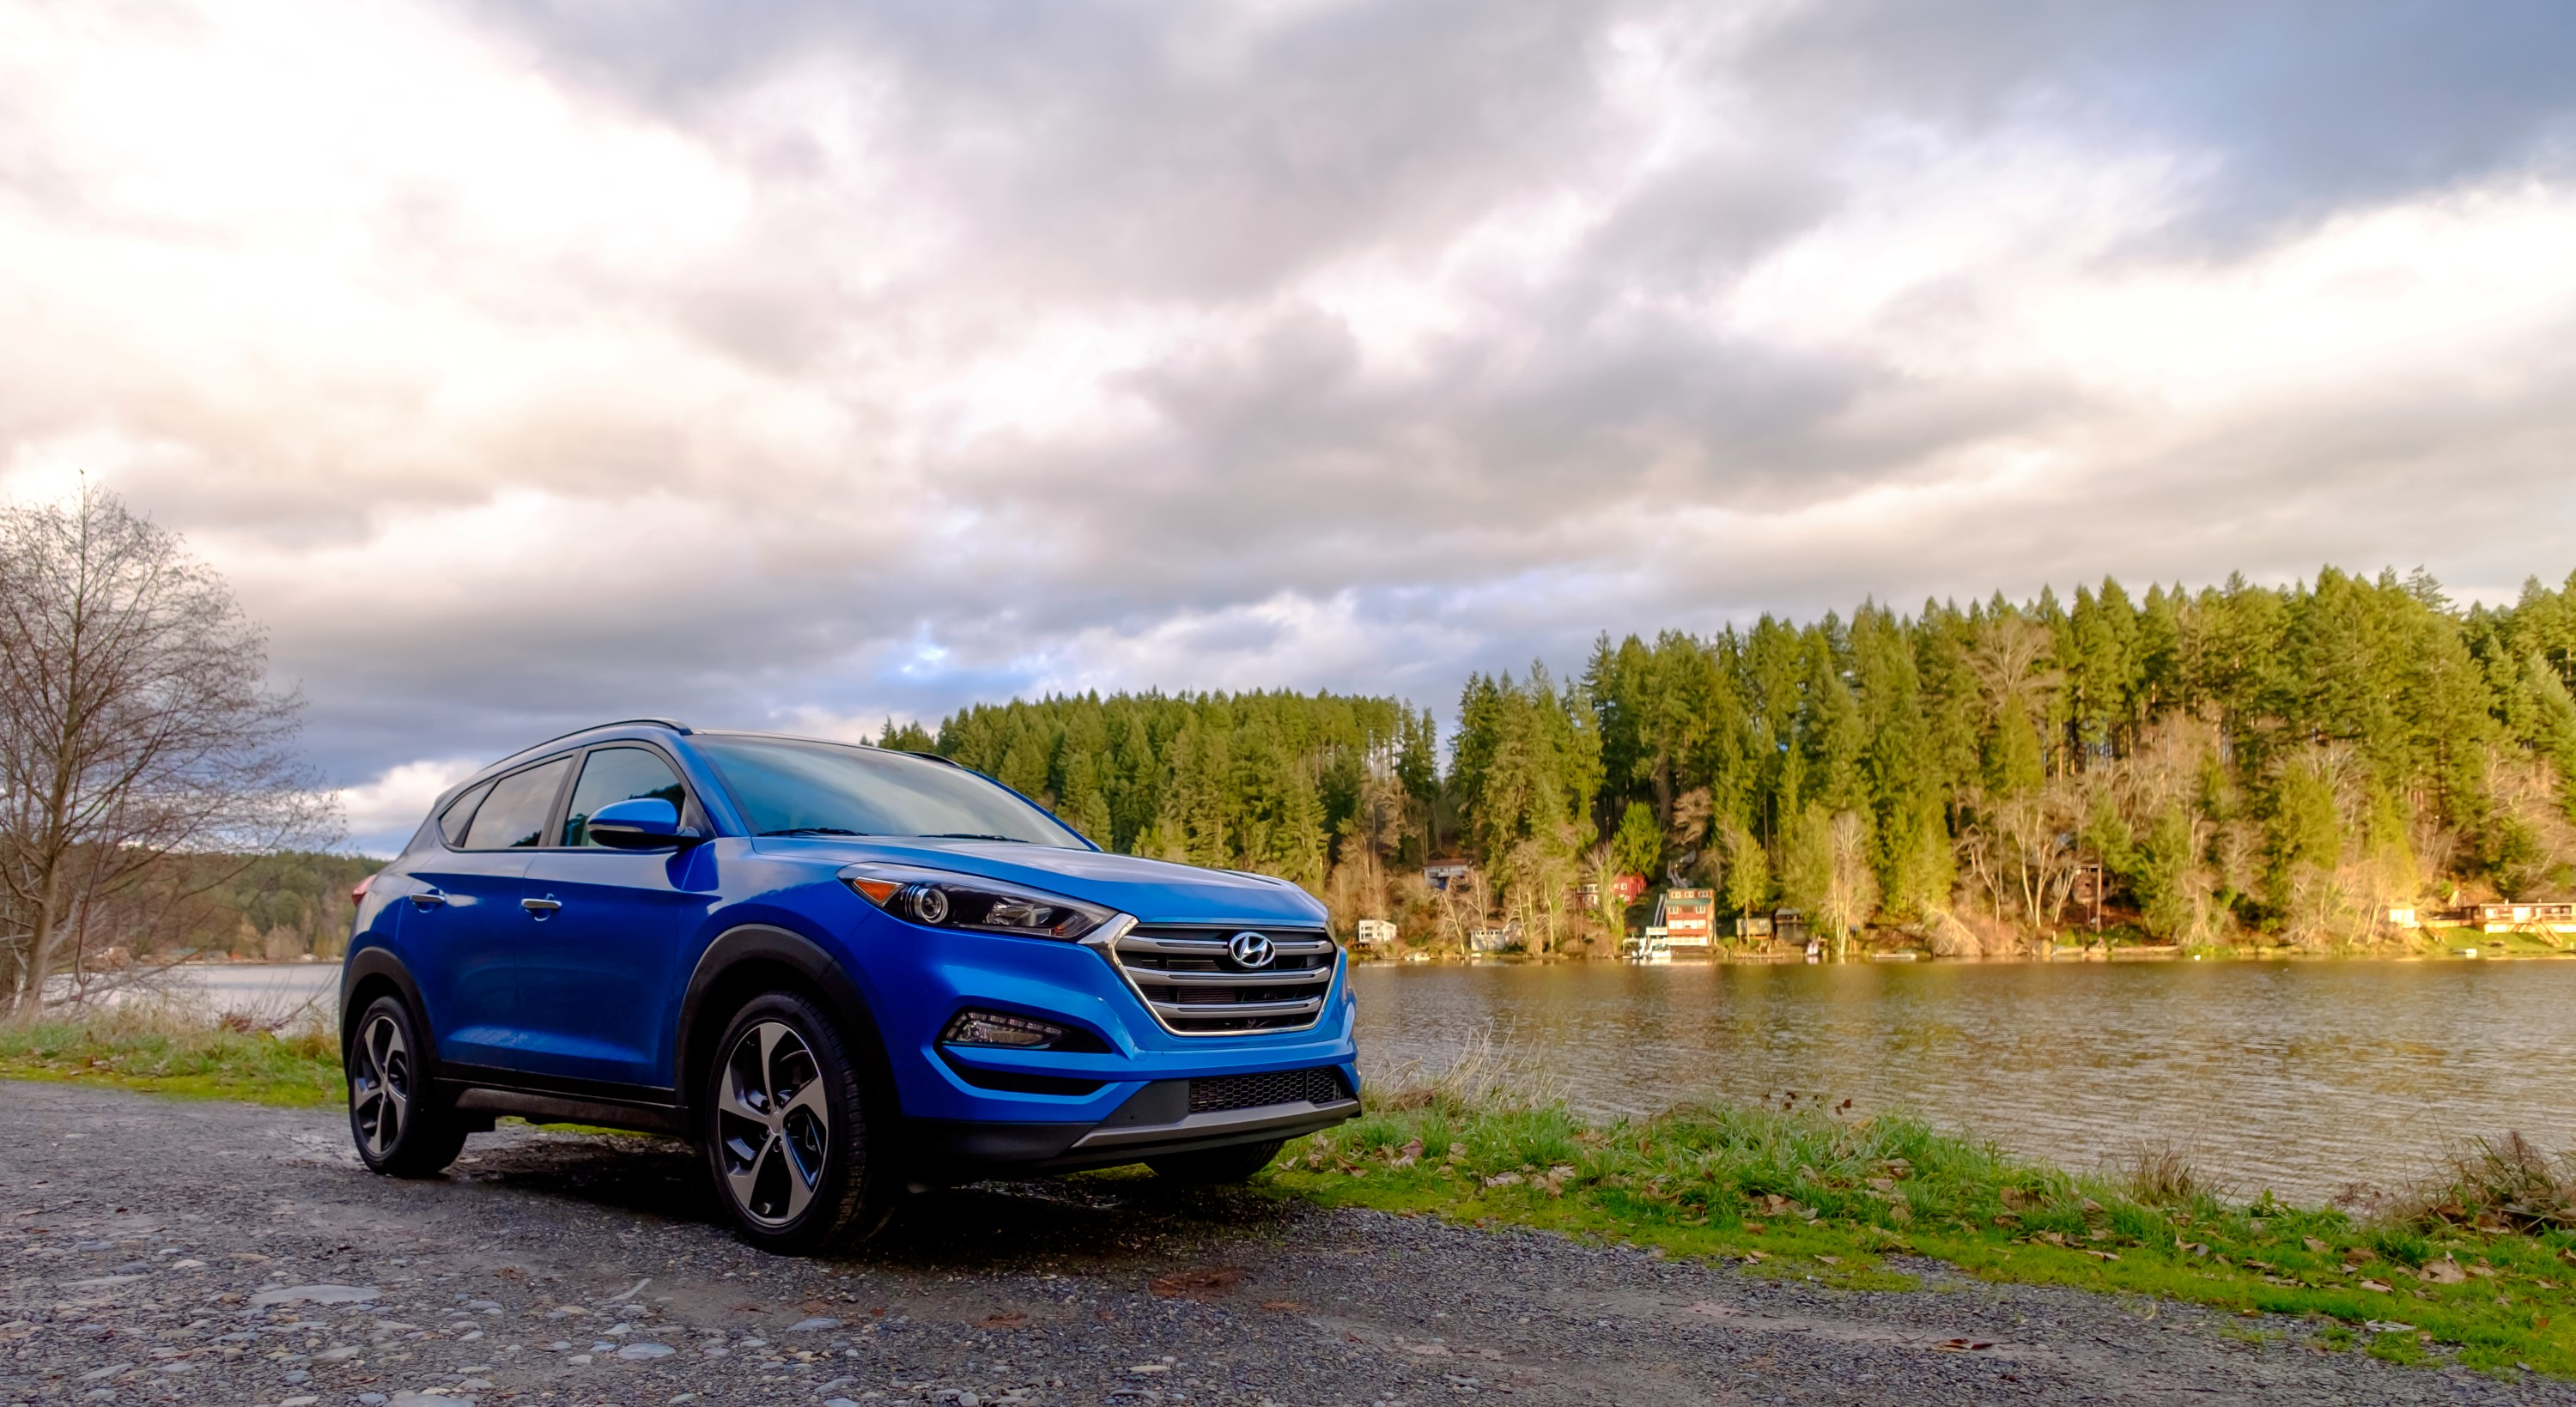 hyundai awd pic cargurus overview tucson review limited cars